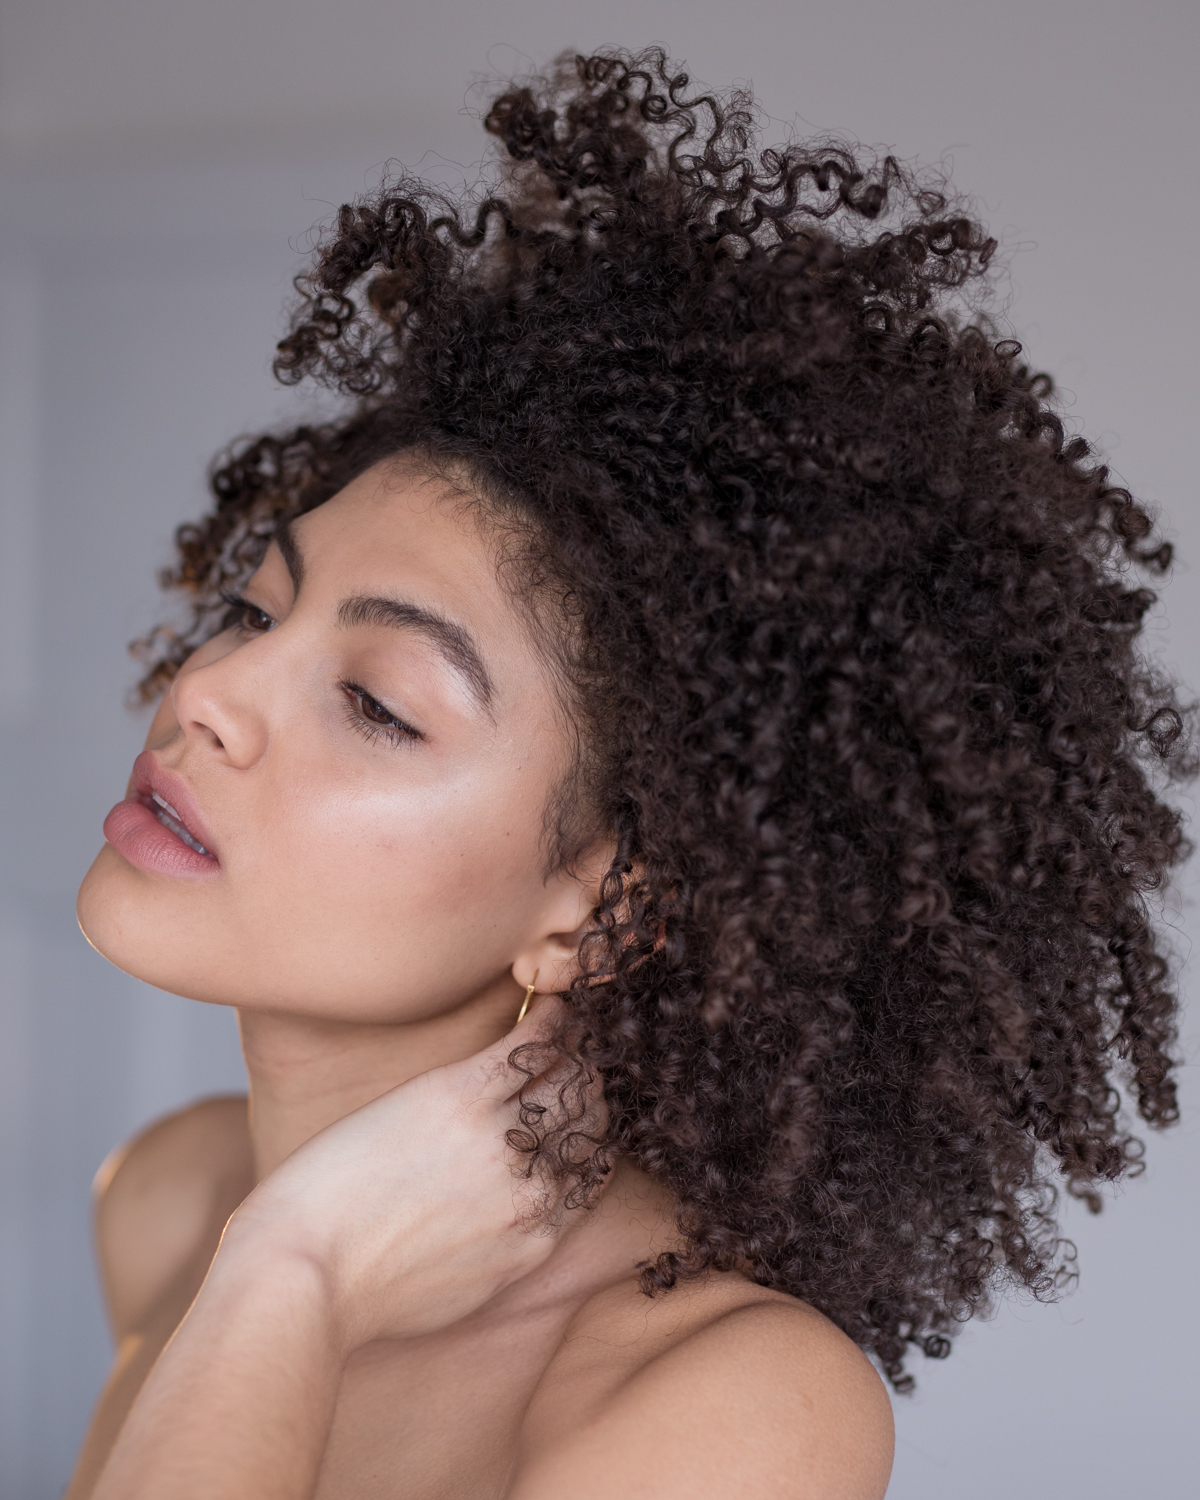 Samio Cult Beauty blogger self portrait afro hair March 2018